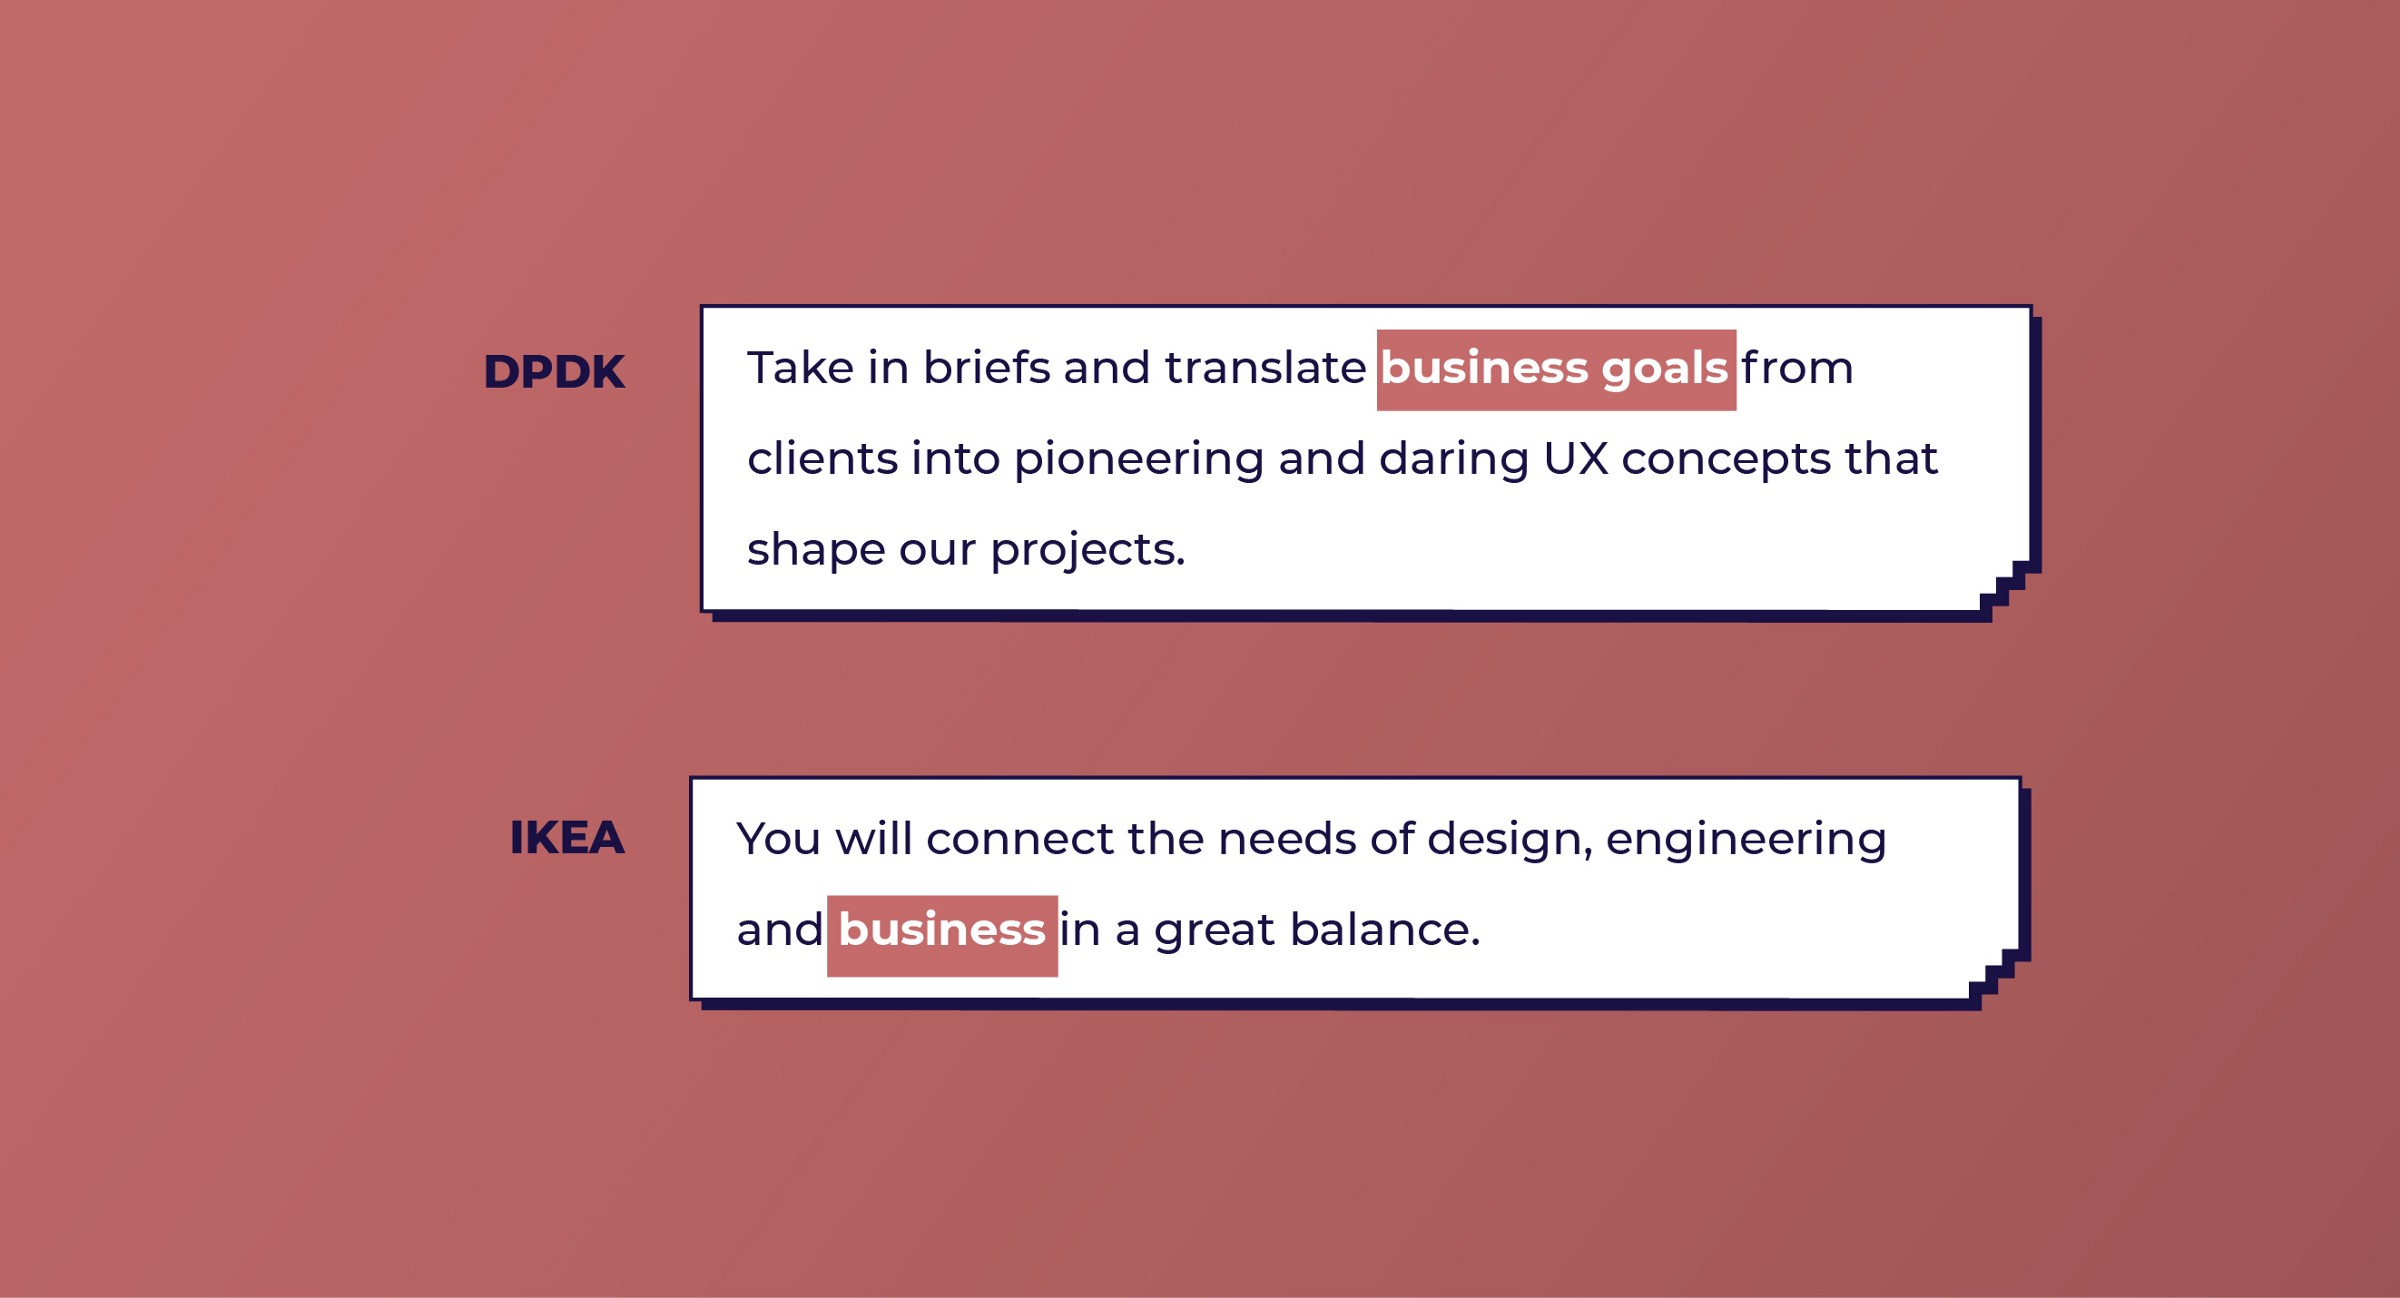 DPDK and IKEA look for Business skills from UX designers